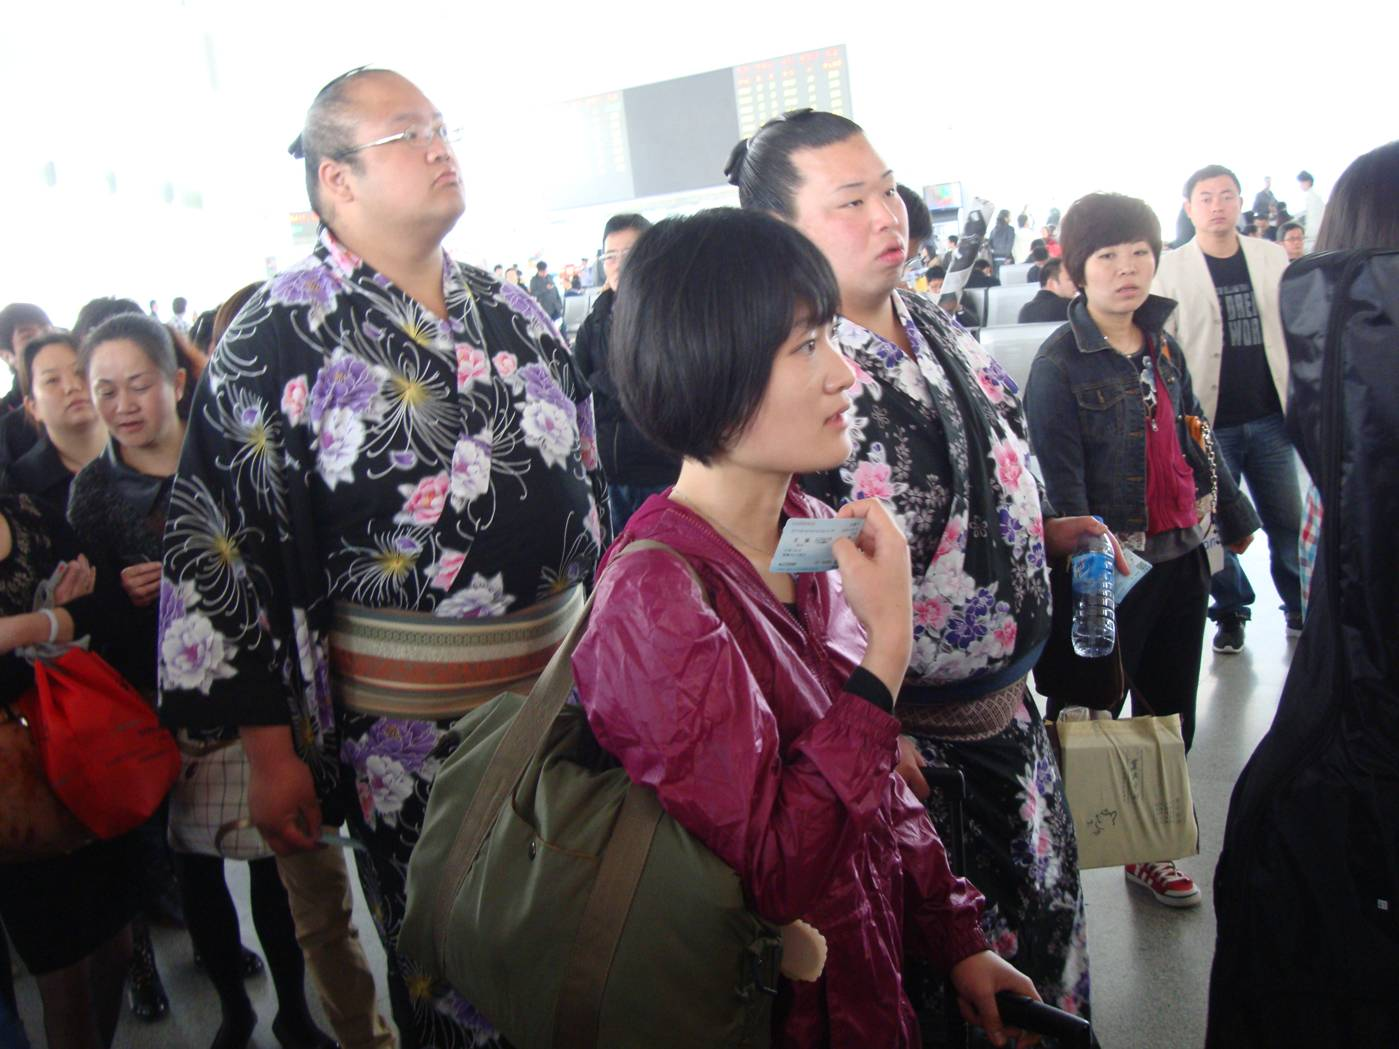 Picture:  Two Japanese sumo wrestlers in the lineup for the train in Wuxi train station.  Wuxi, China